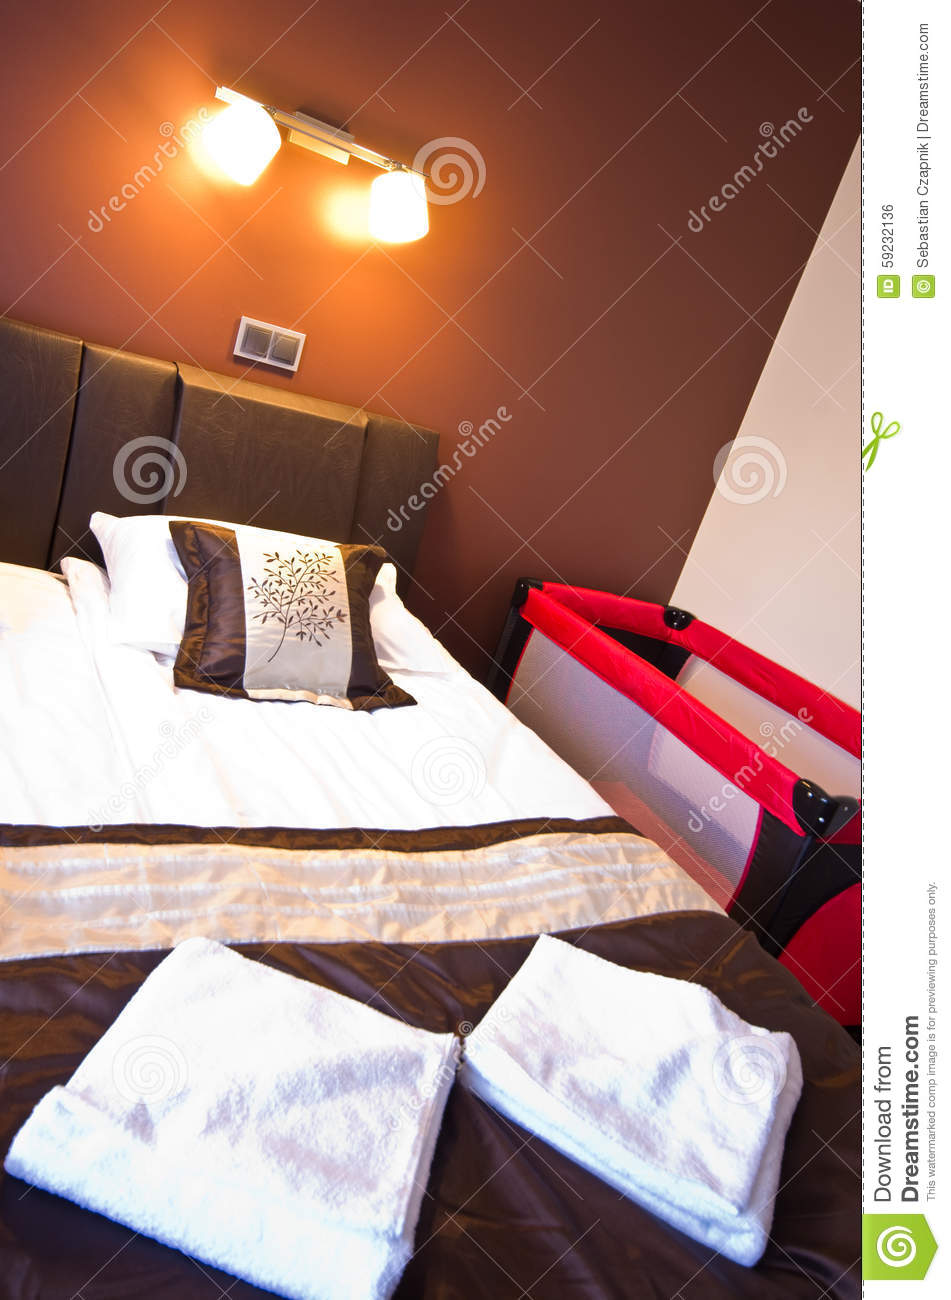 Motel Room Interiors: Hotel Bedroom With Playpen Stock Photo. Image Of Concept